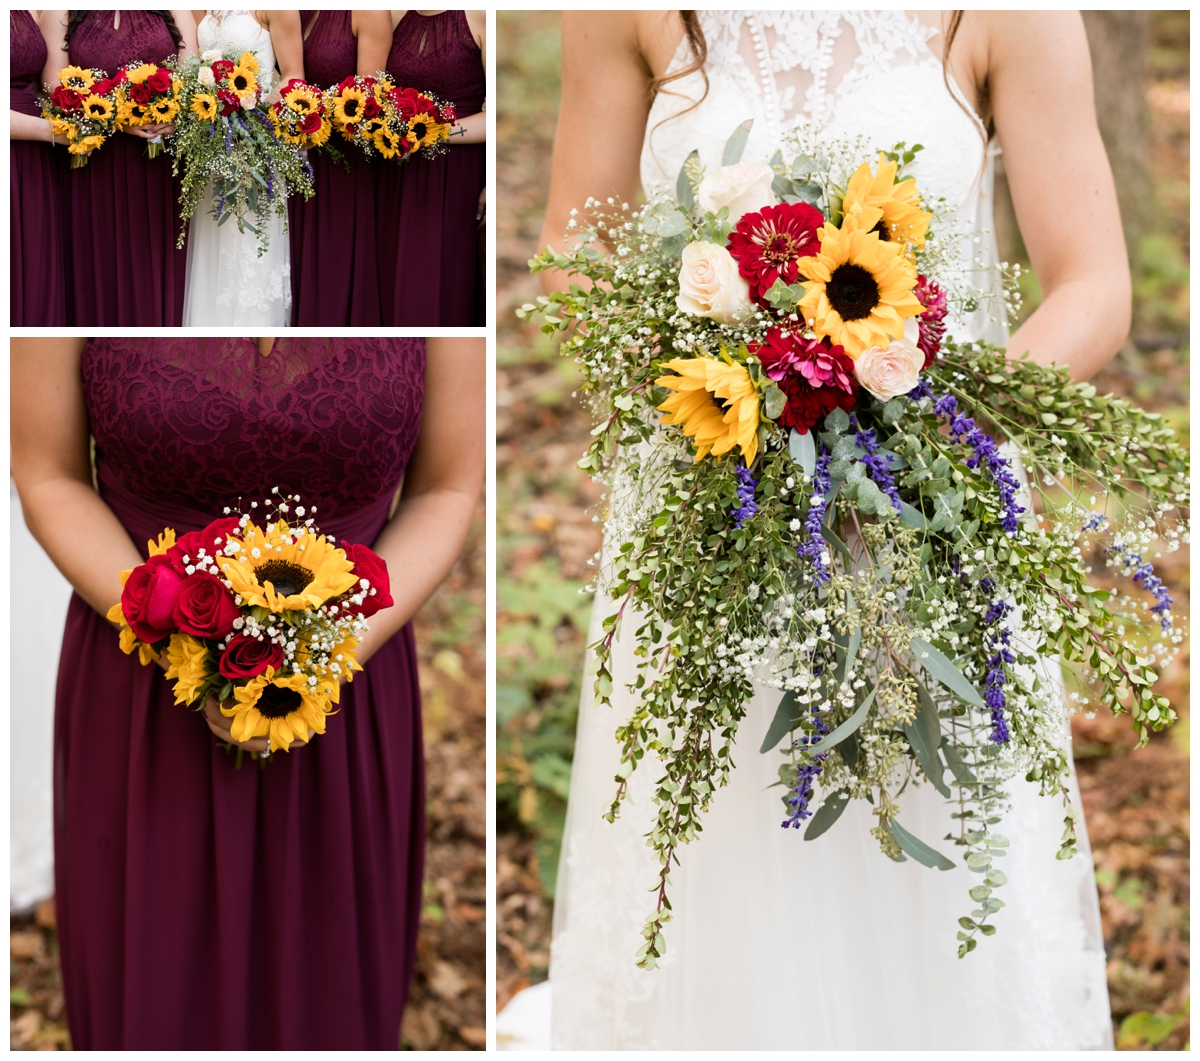 Floral photos at a shabby chic outdoor rustic wedding in the woods